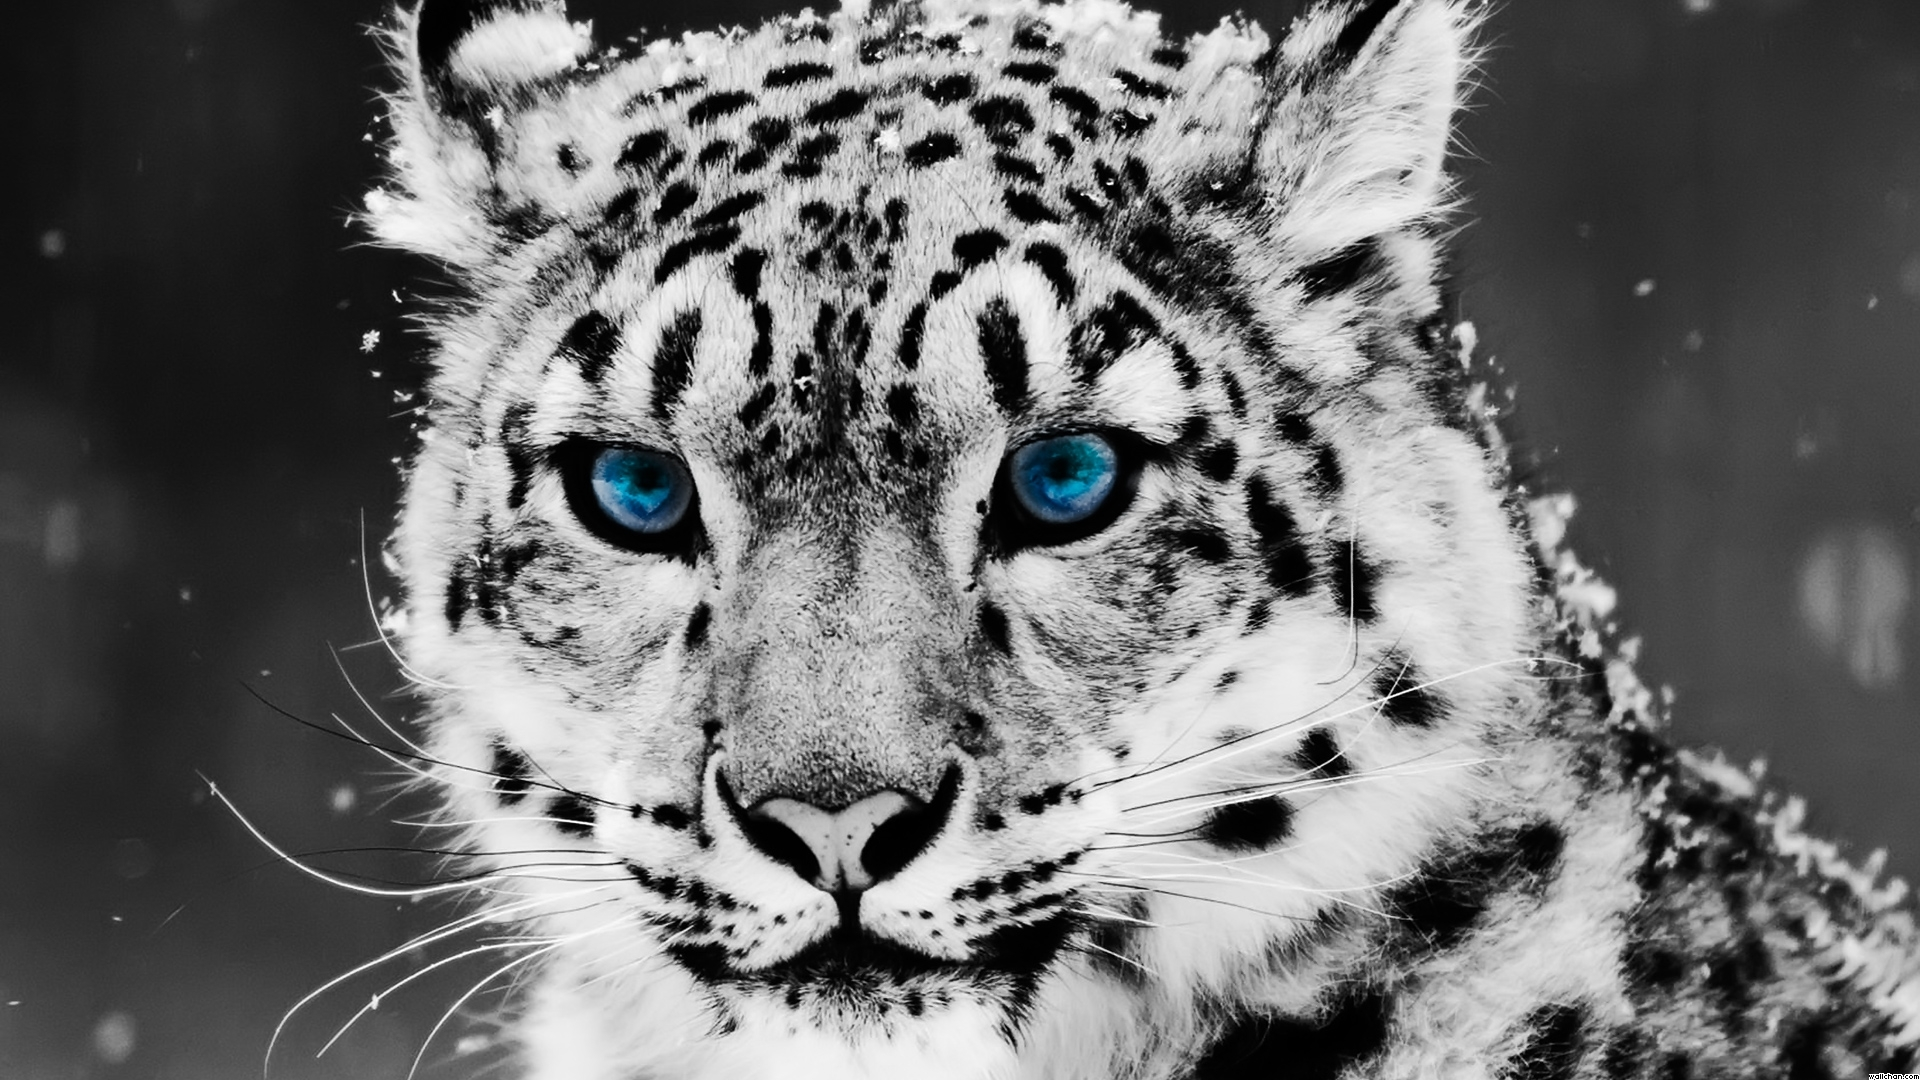 Blue Eyed Snow Leopard Wallpaper - Eyes Wallpaper